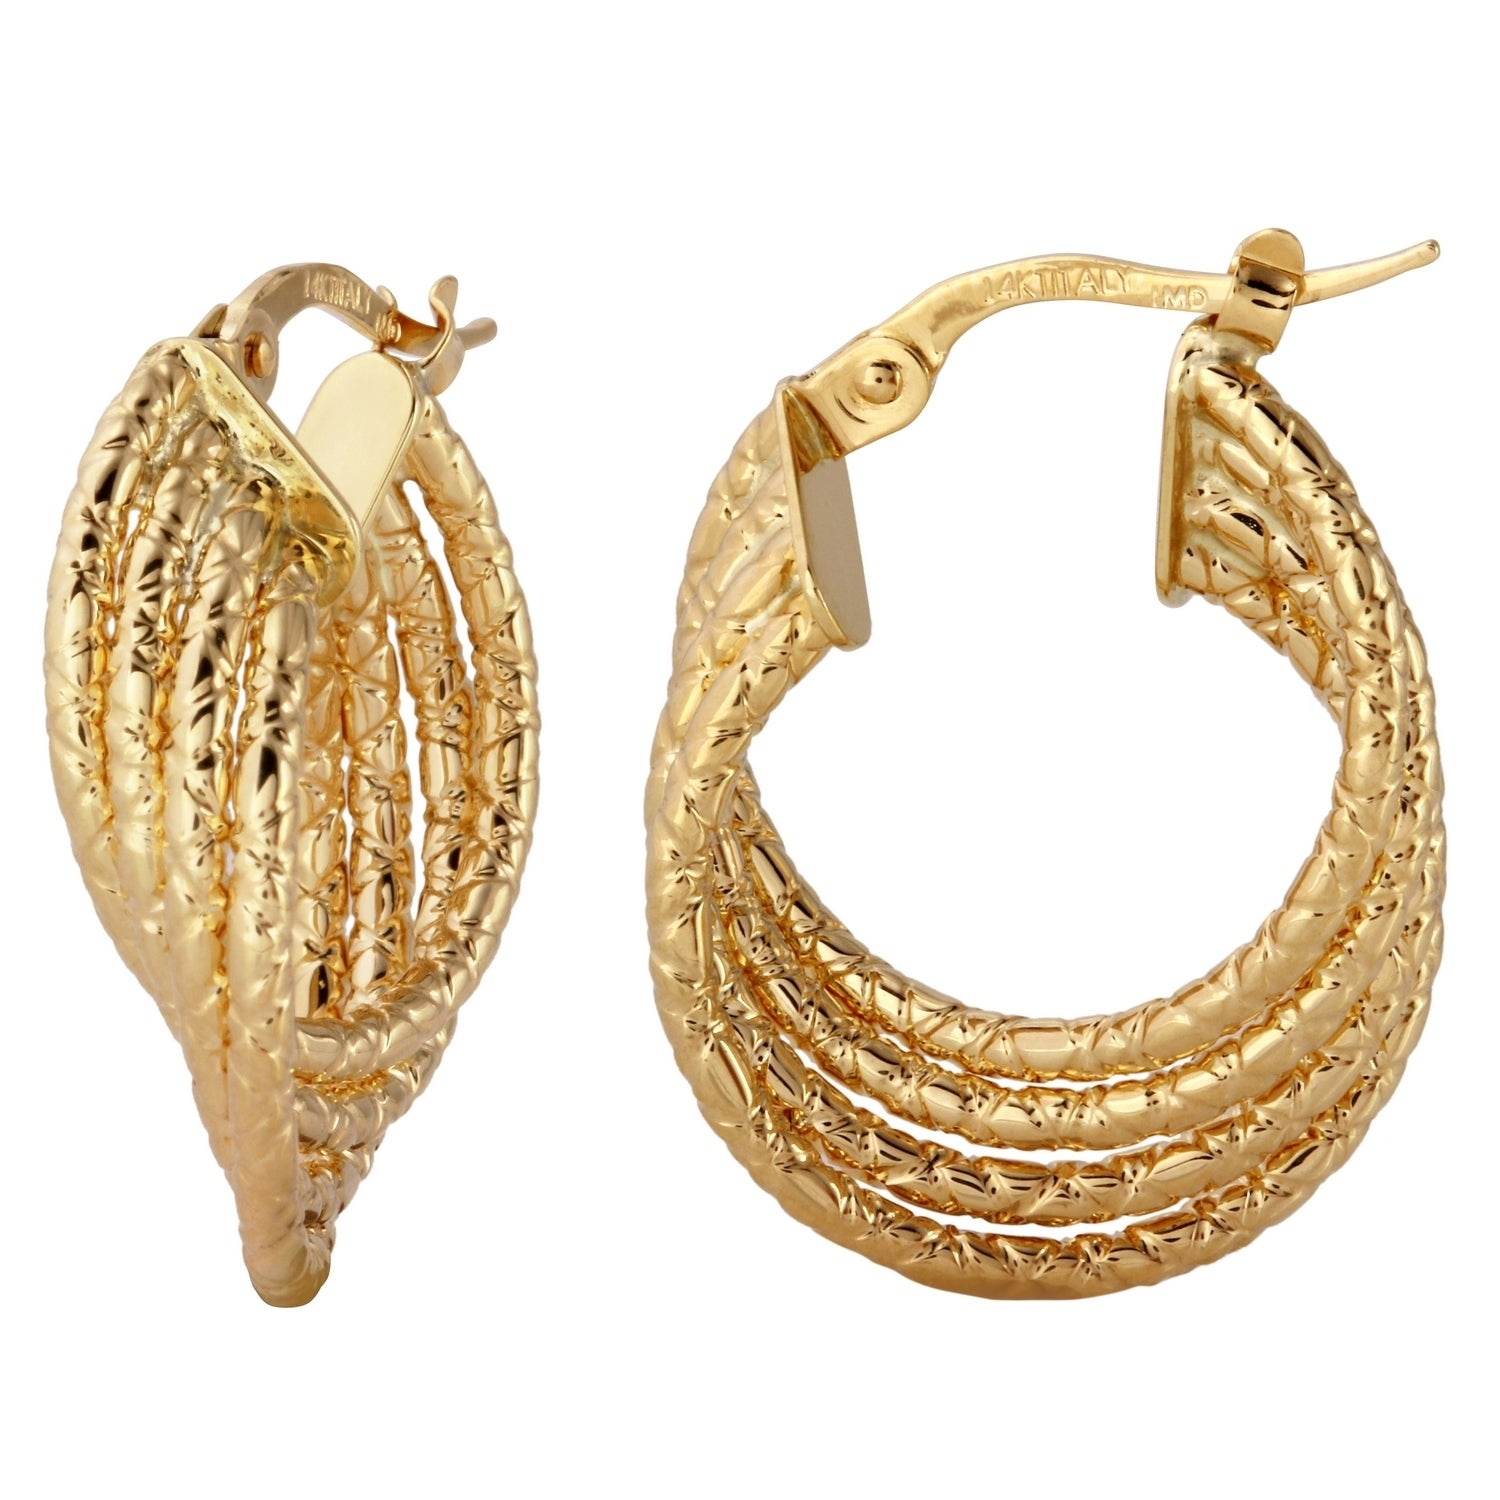 e earrings the silver in radiance gold italian